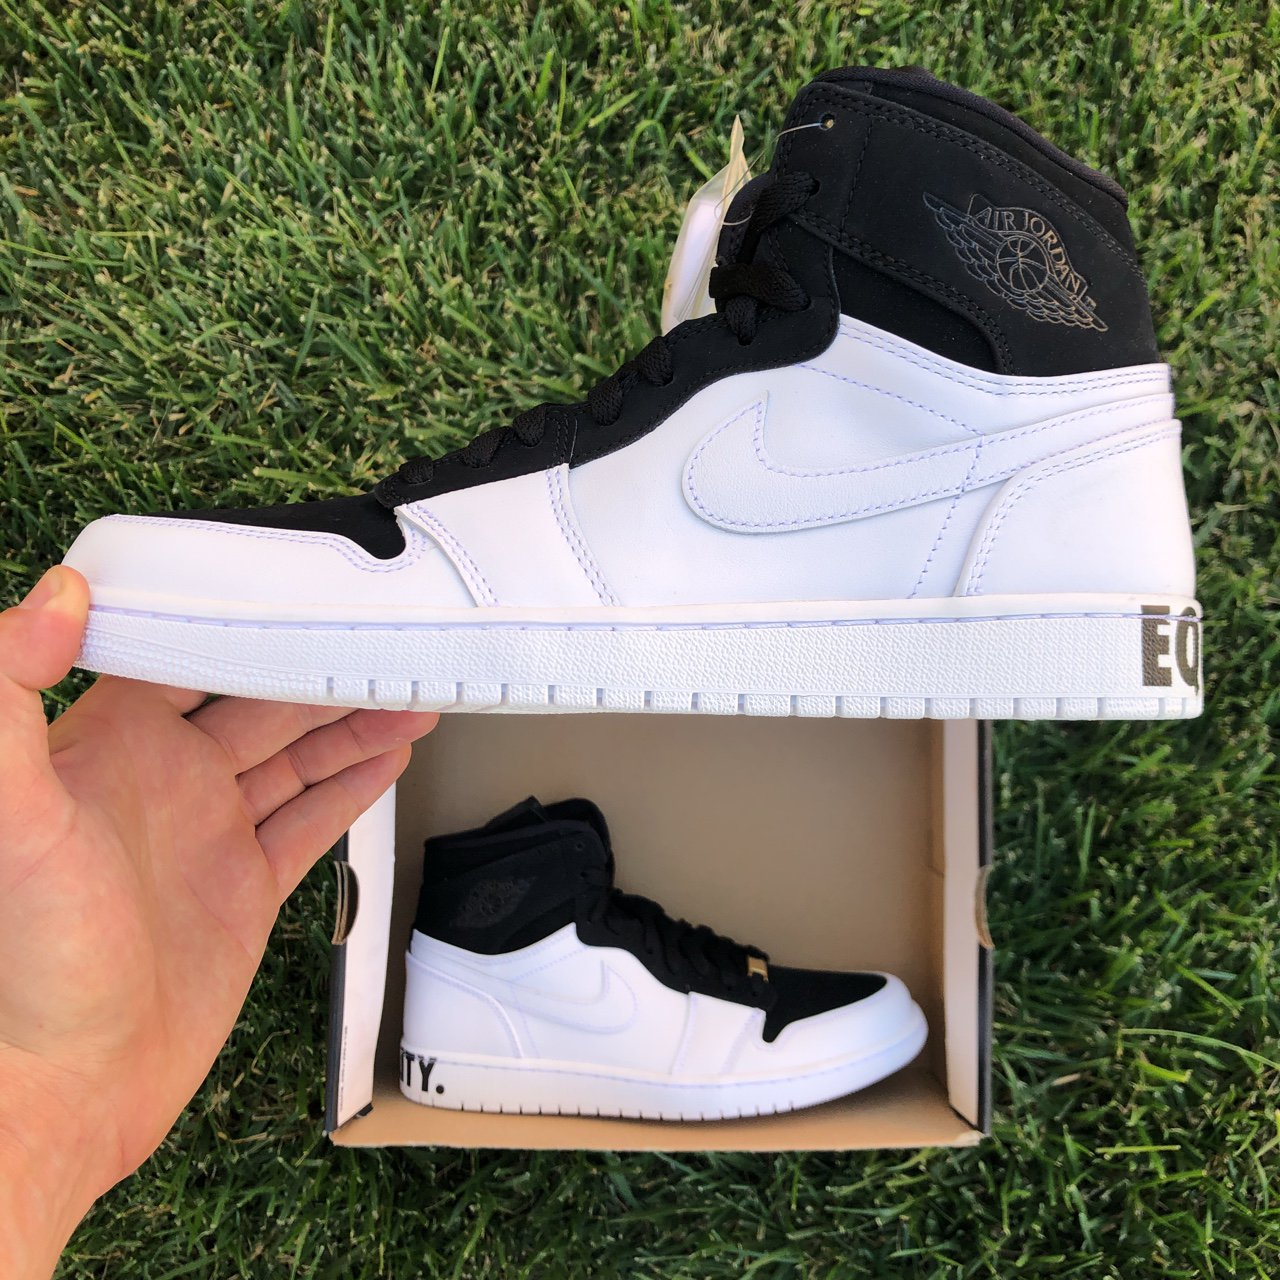 04b39e9ec5c4 Out here with with these.... Nike Air Jordan 1 Retro High - Depop